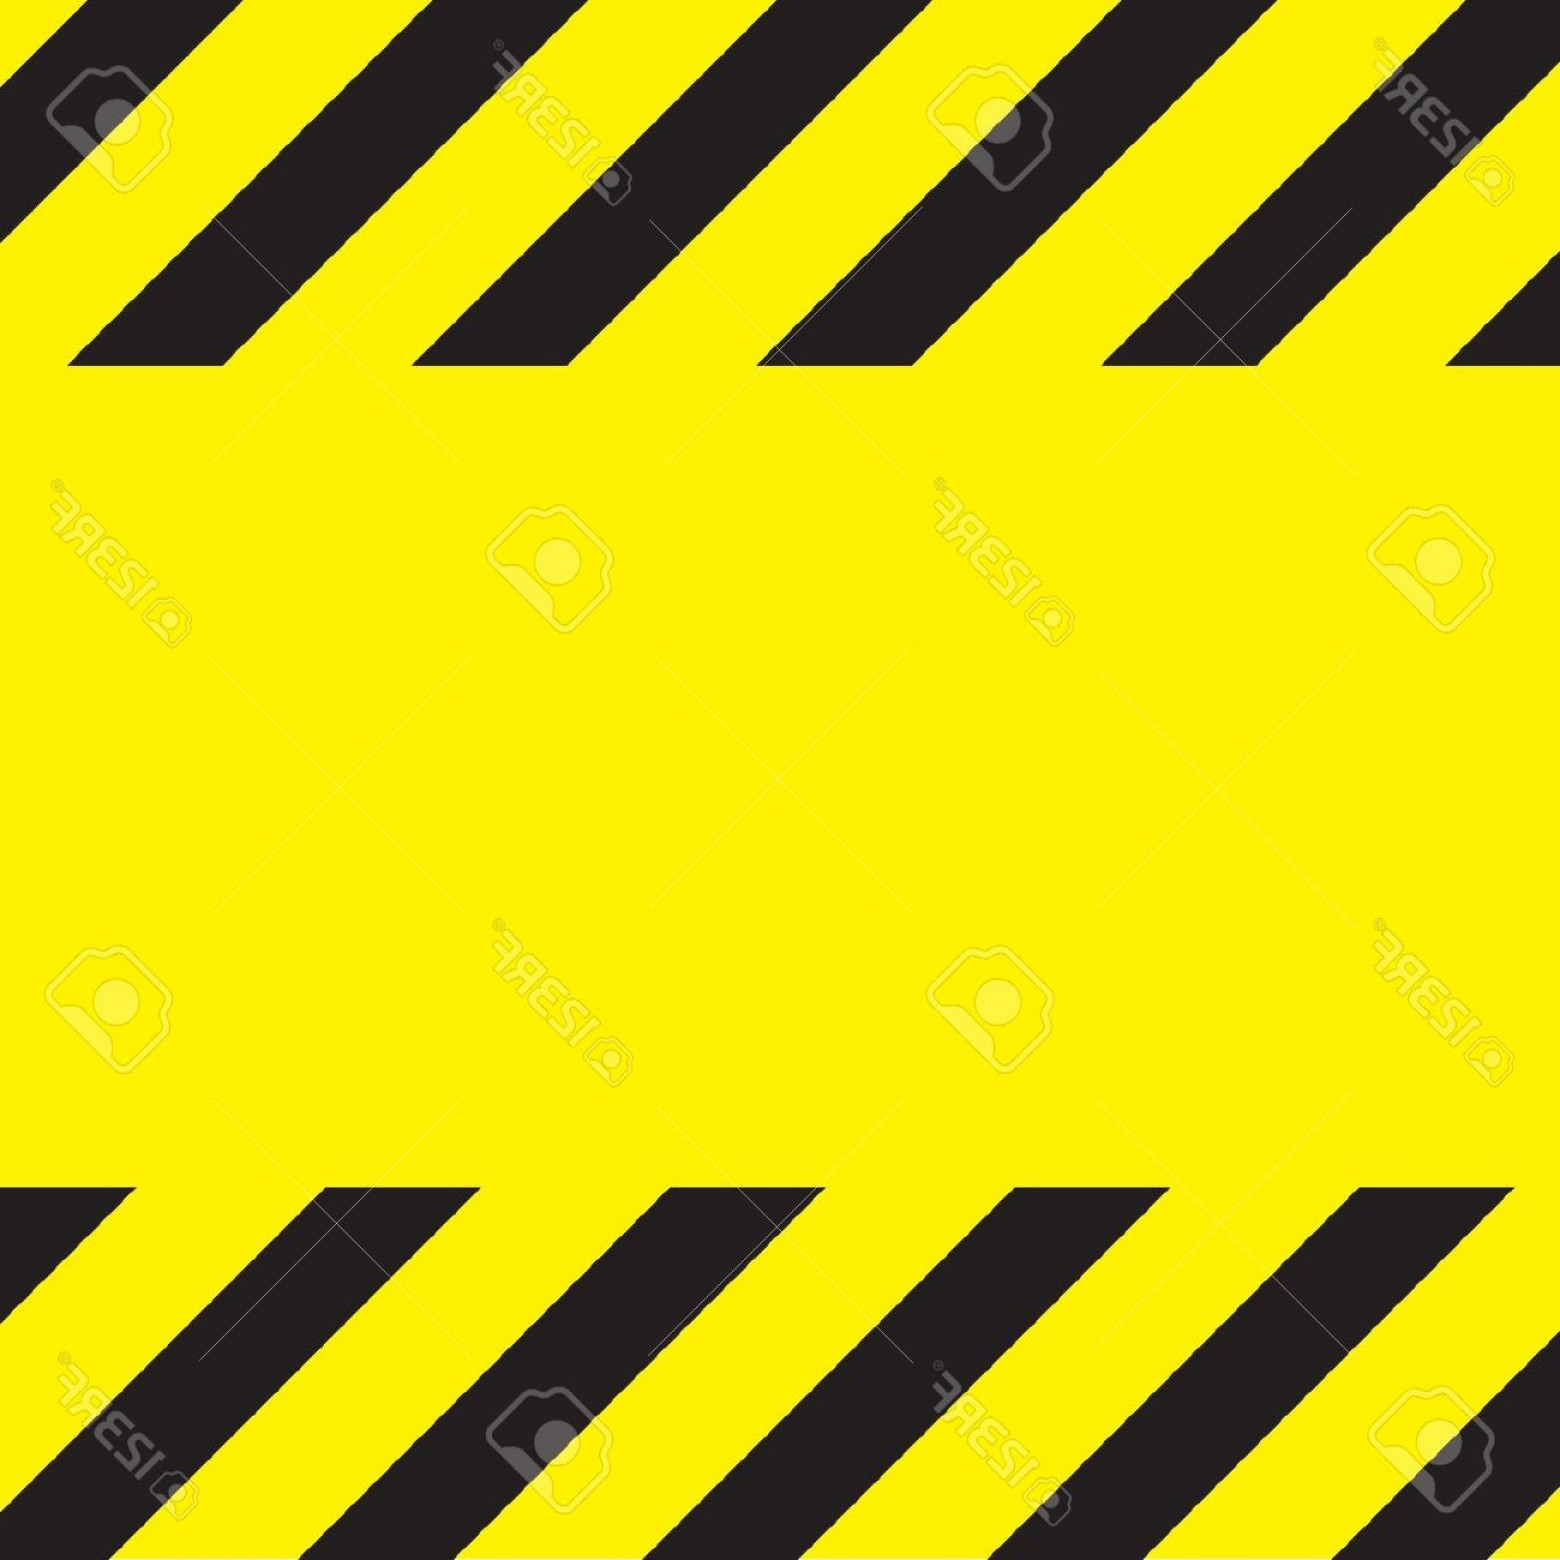 Caution Stripes Vector: Photosimple Caution Construction Background Stripes On Yellow